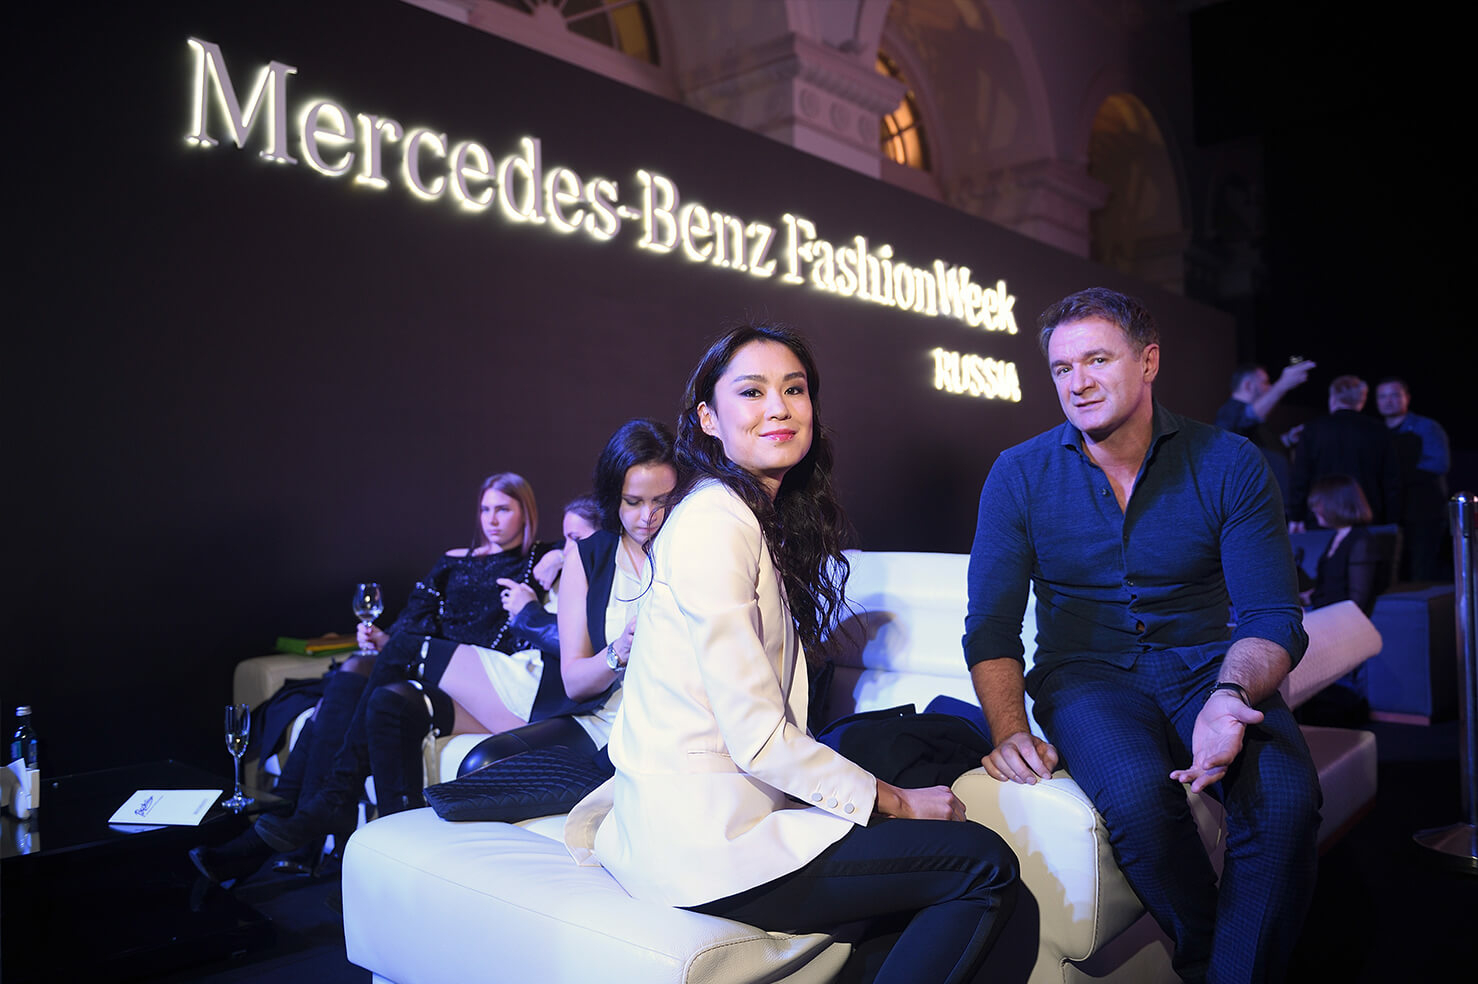 Mercedes-Benz Fashion Week 2019